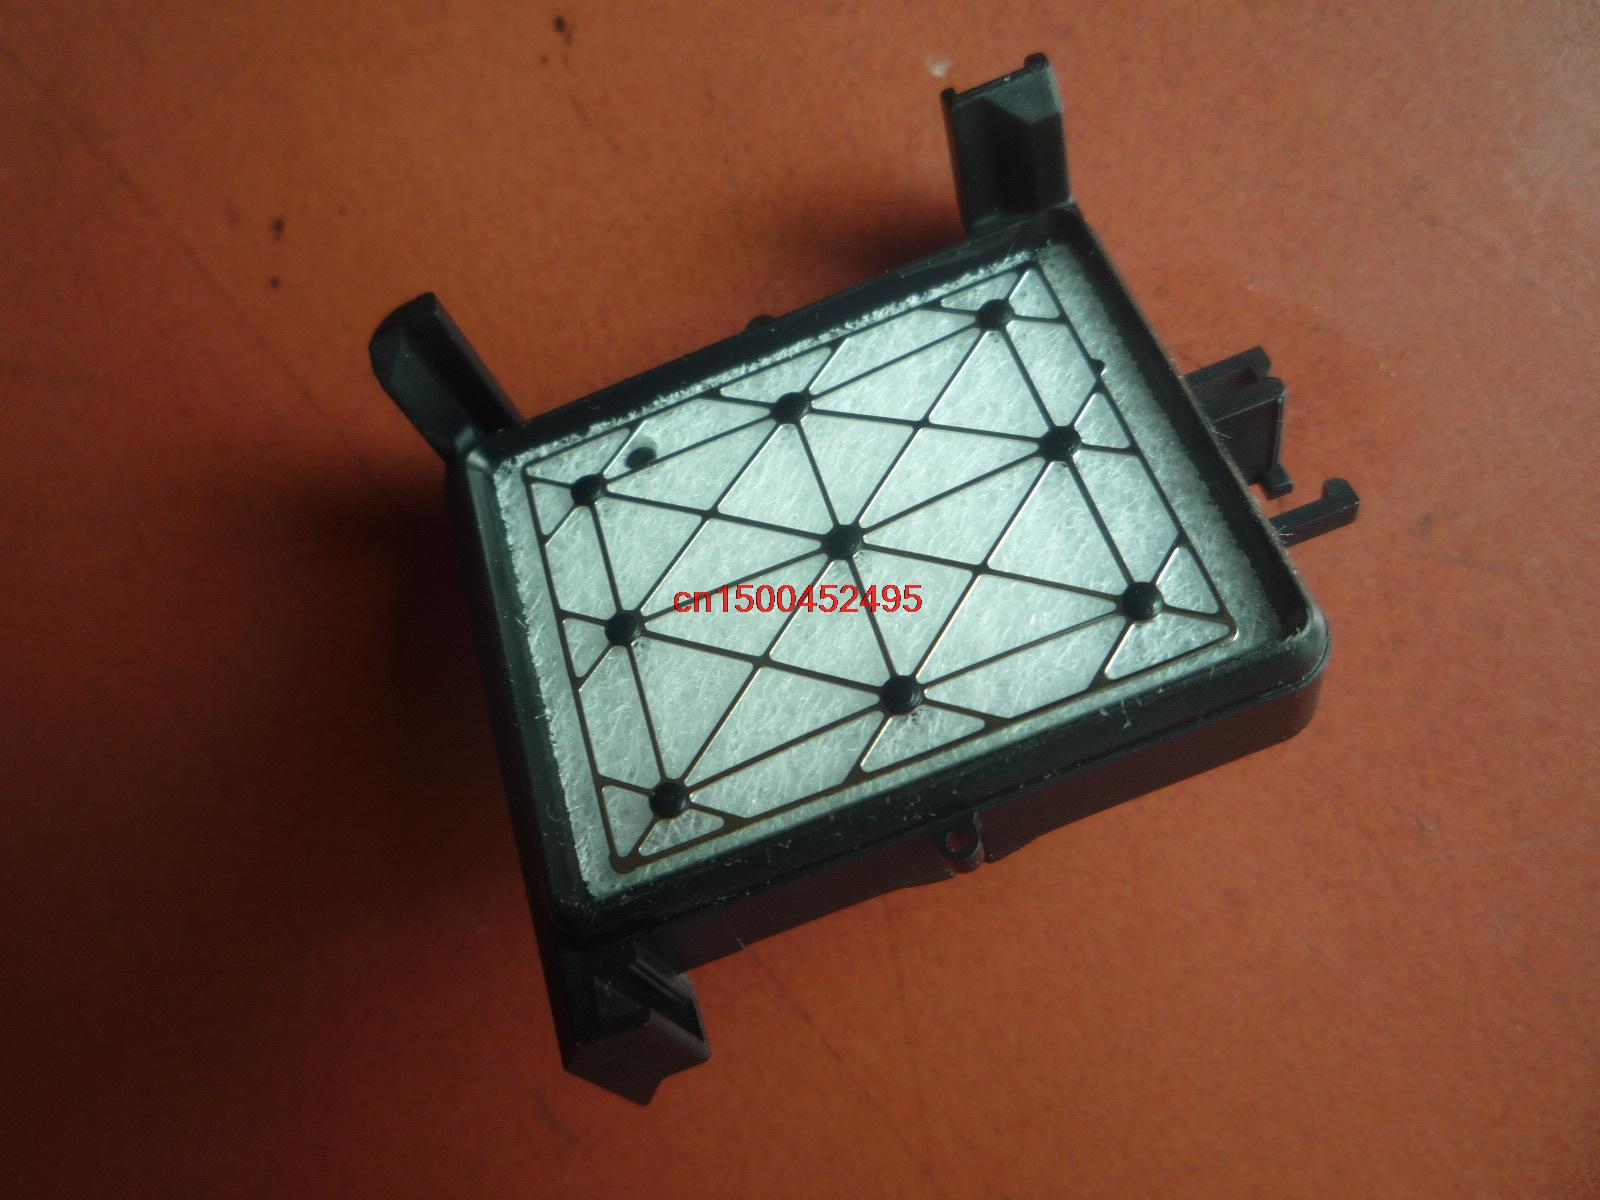 New and original capping station for EPSON PRO-4450 4800 4880C PX6250 6550 4880 PUMP CAP PAD ASSY ASP CAP ASSY